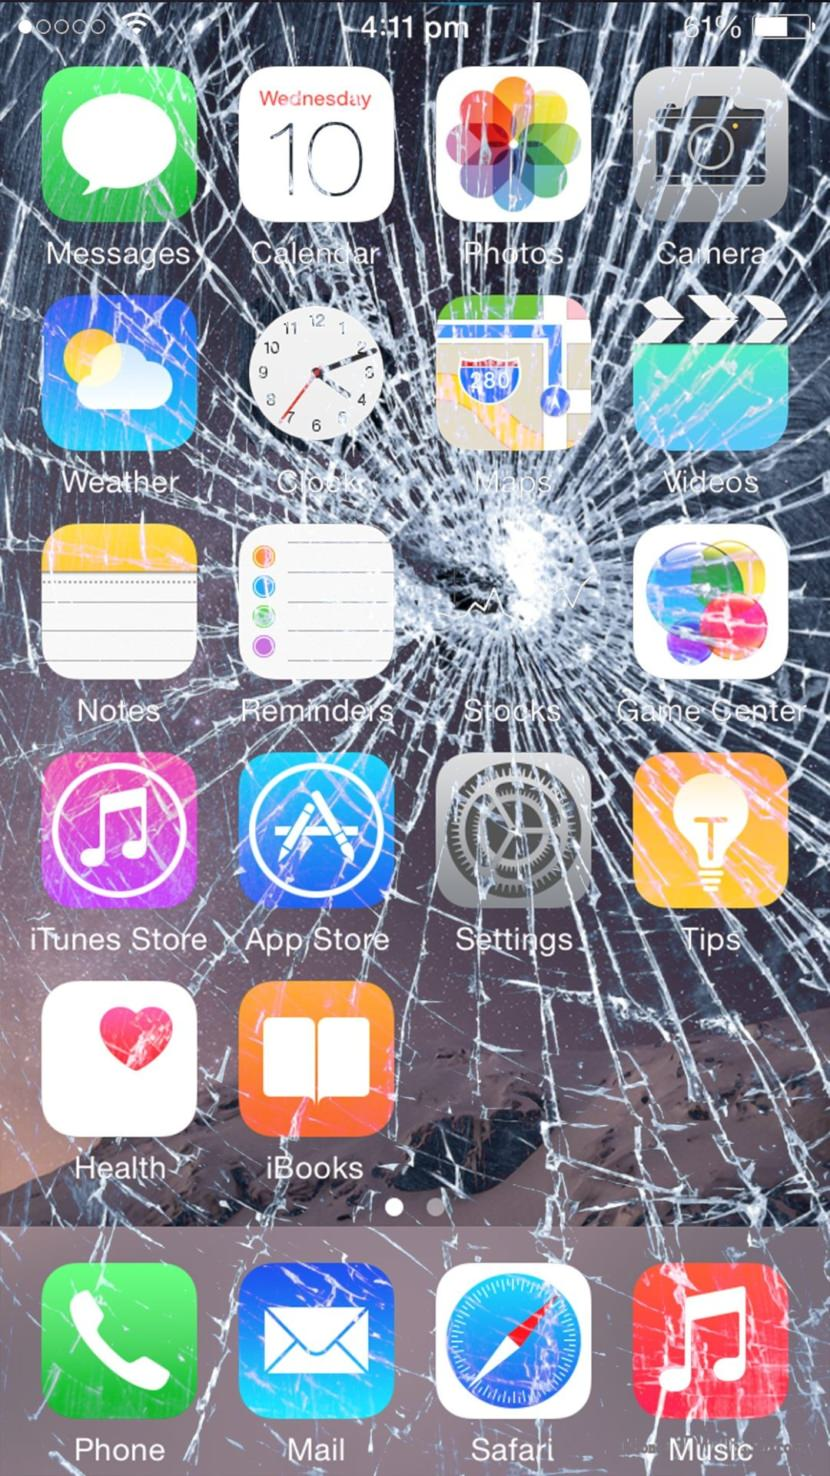 Cracked Screen Wallpaper Iphone X 7 Broken Screen Wallpapers For Apple Iphone Best Prank